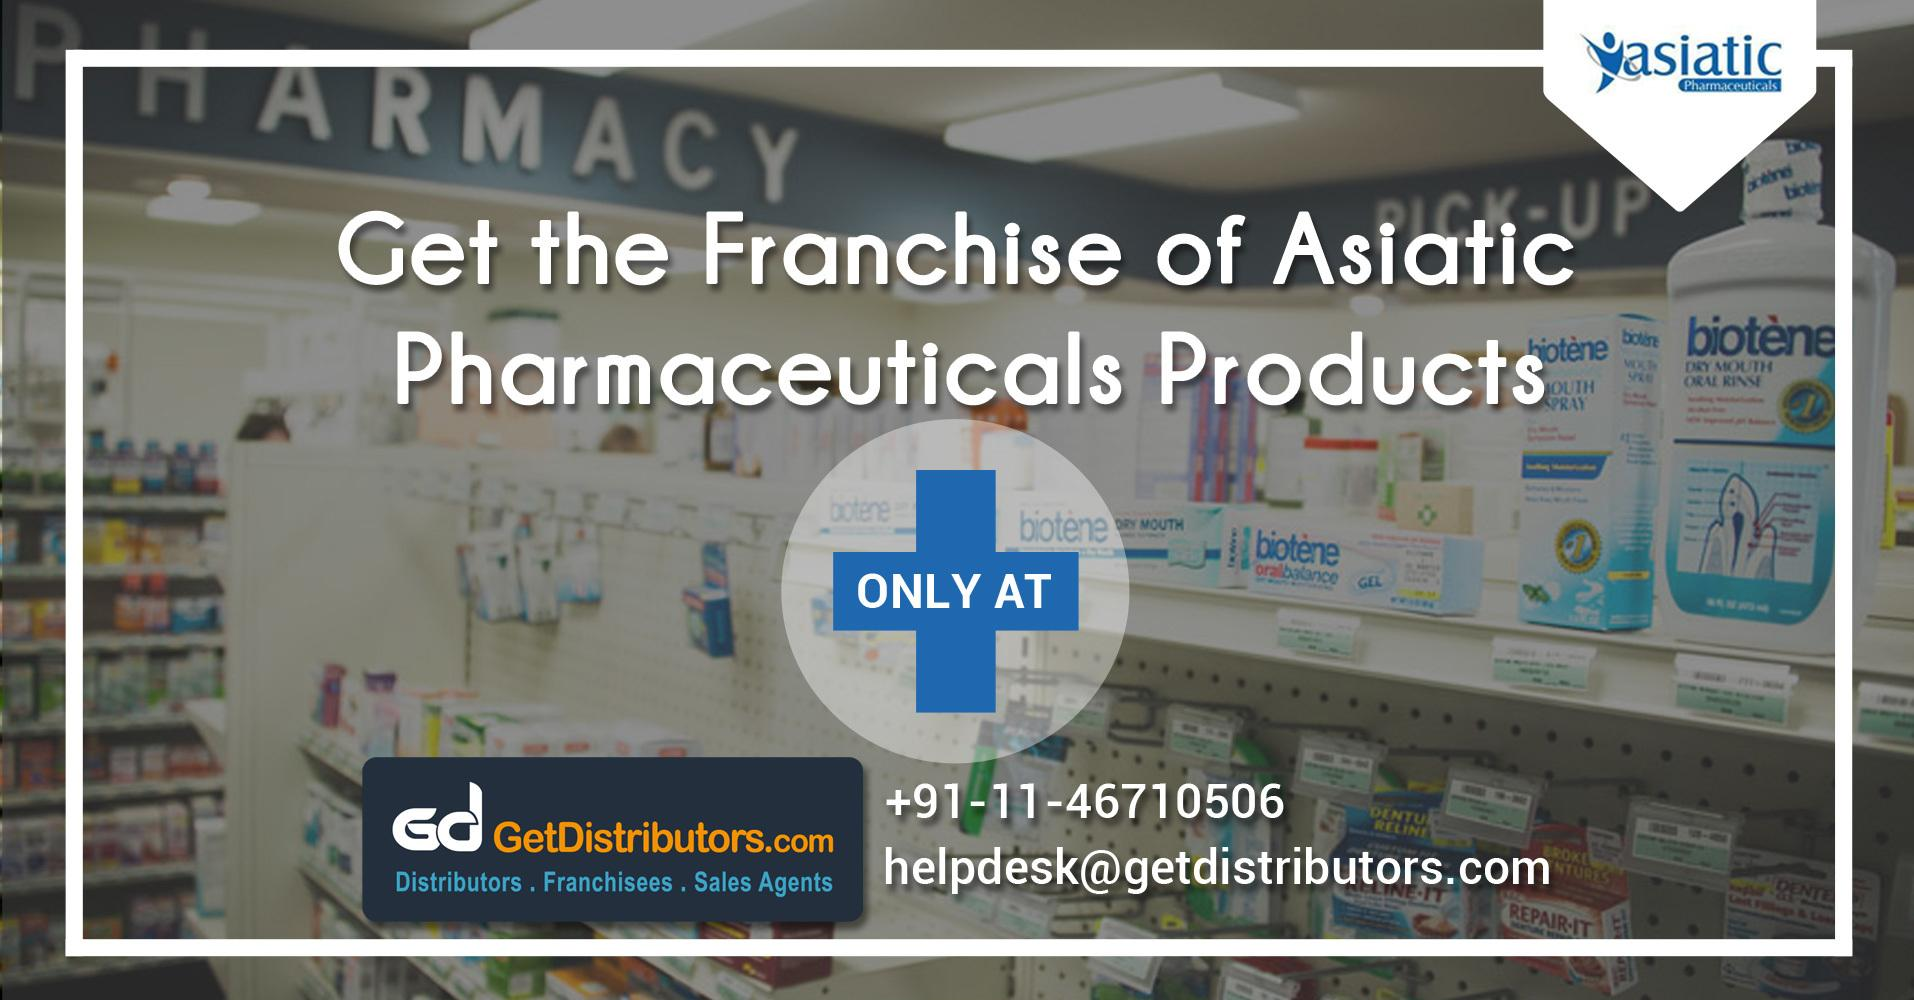 Precisely Formulated & Highly Effective Pharmaceutical Medicines